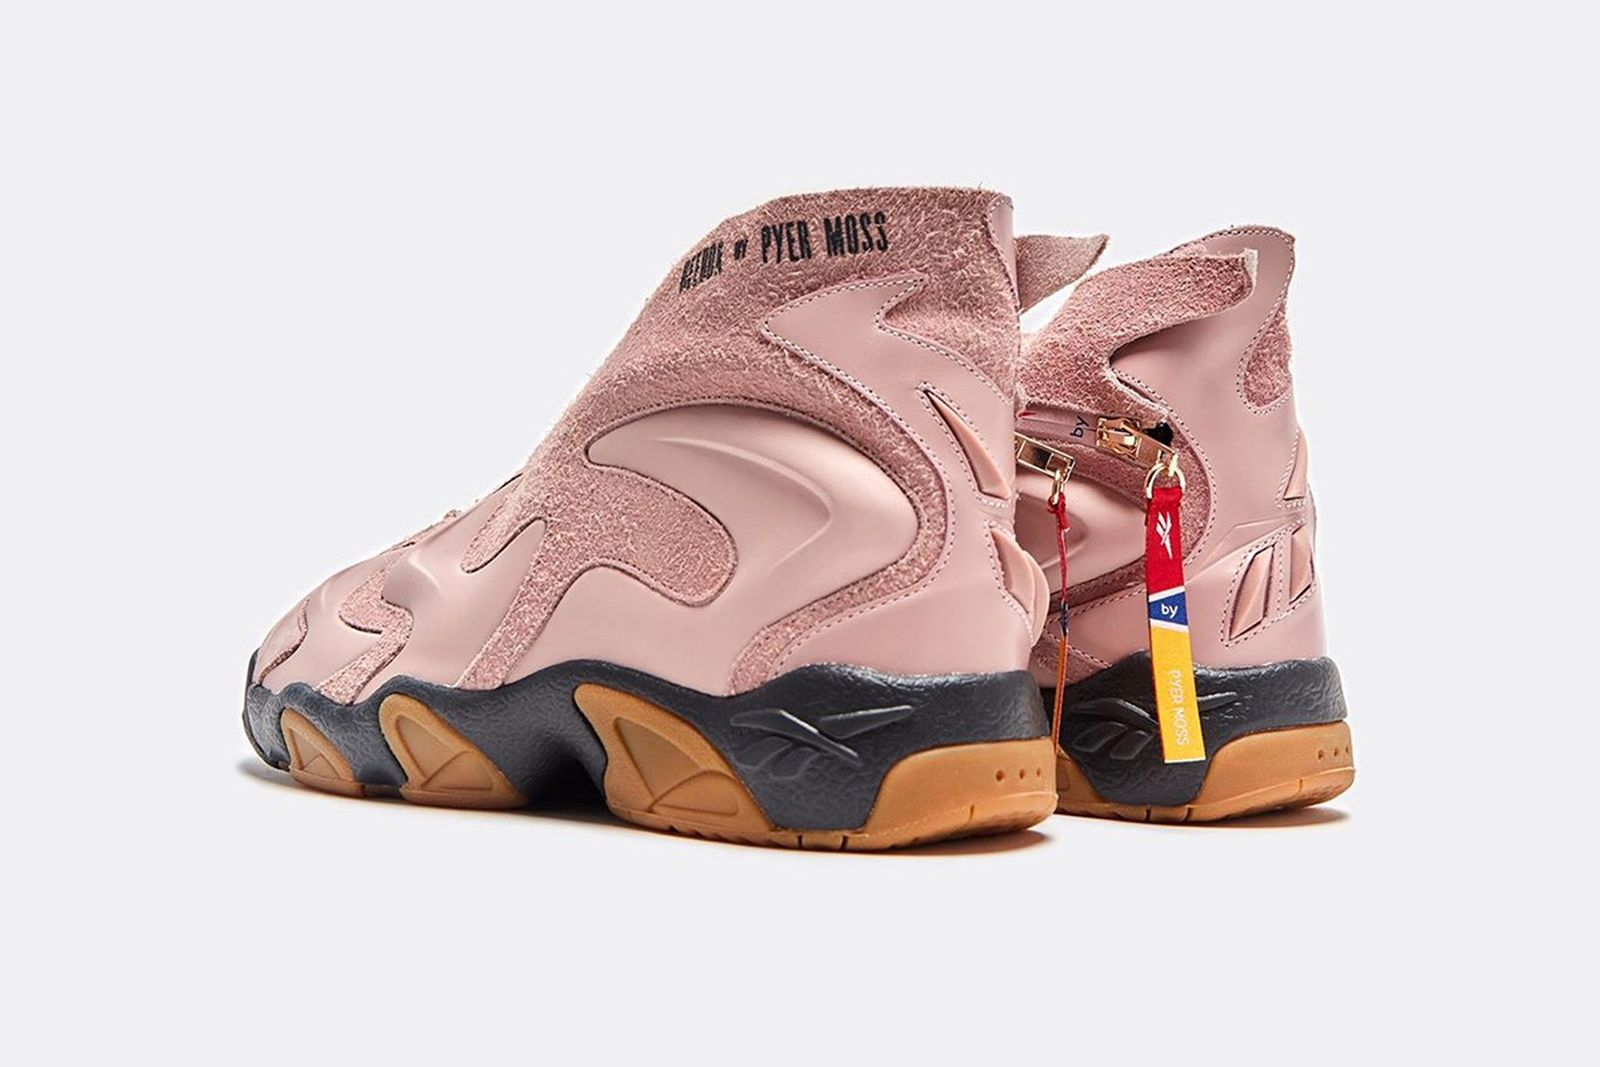 reebok pyer moss mobius experiment 3 pink release date price Reebok by Pyer Moss